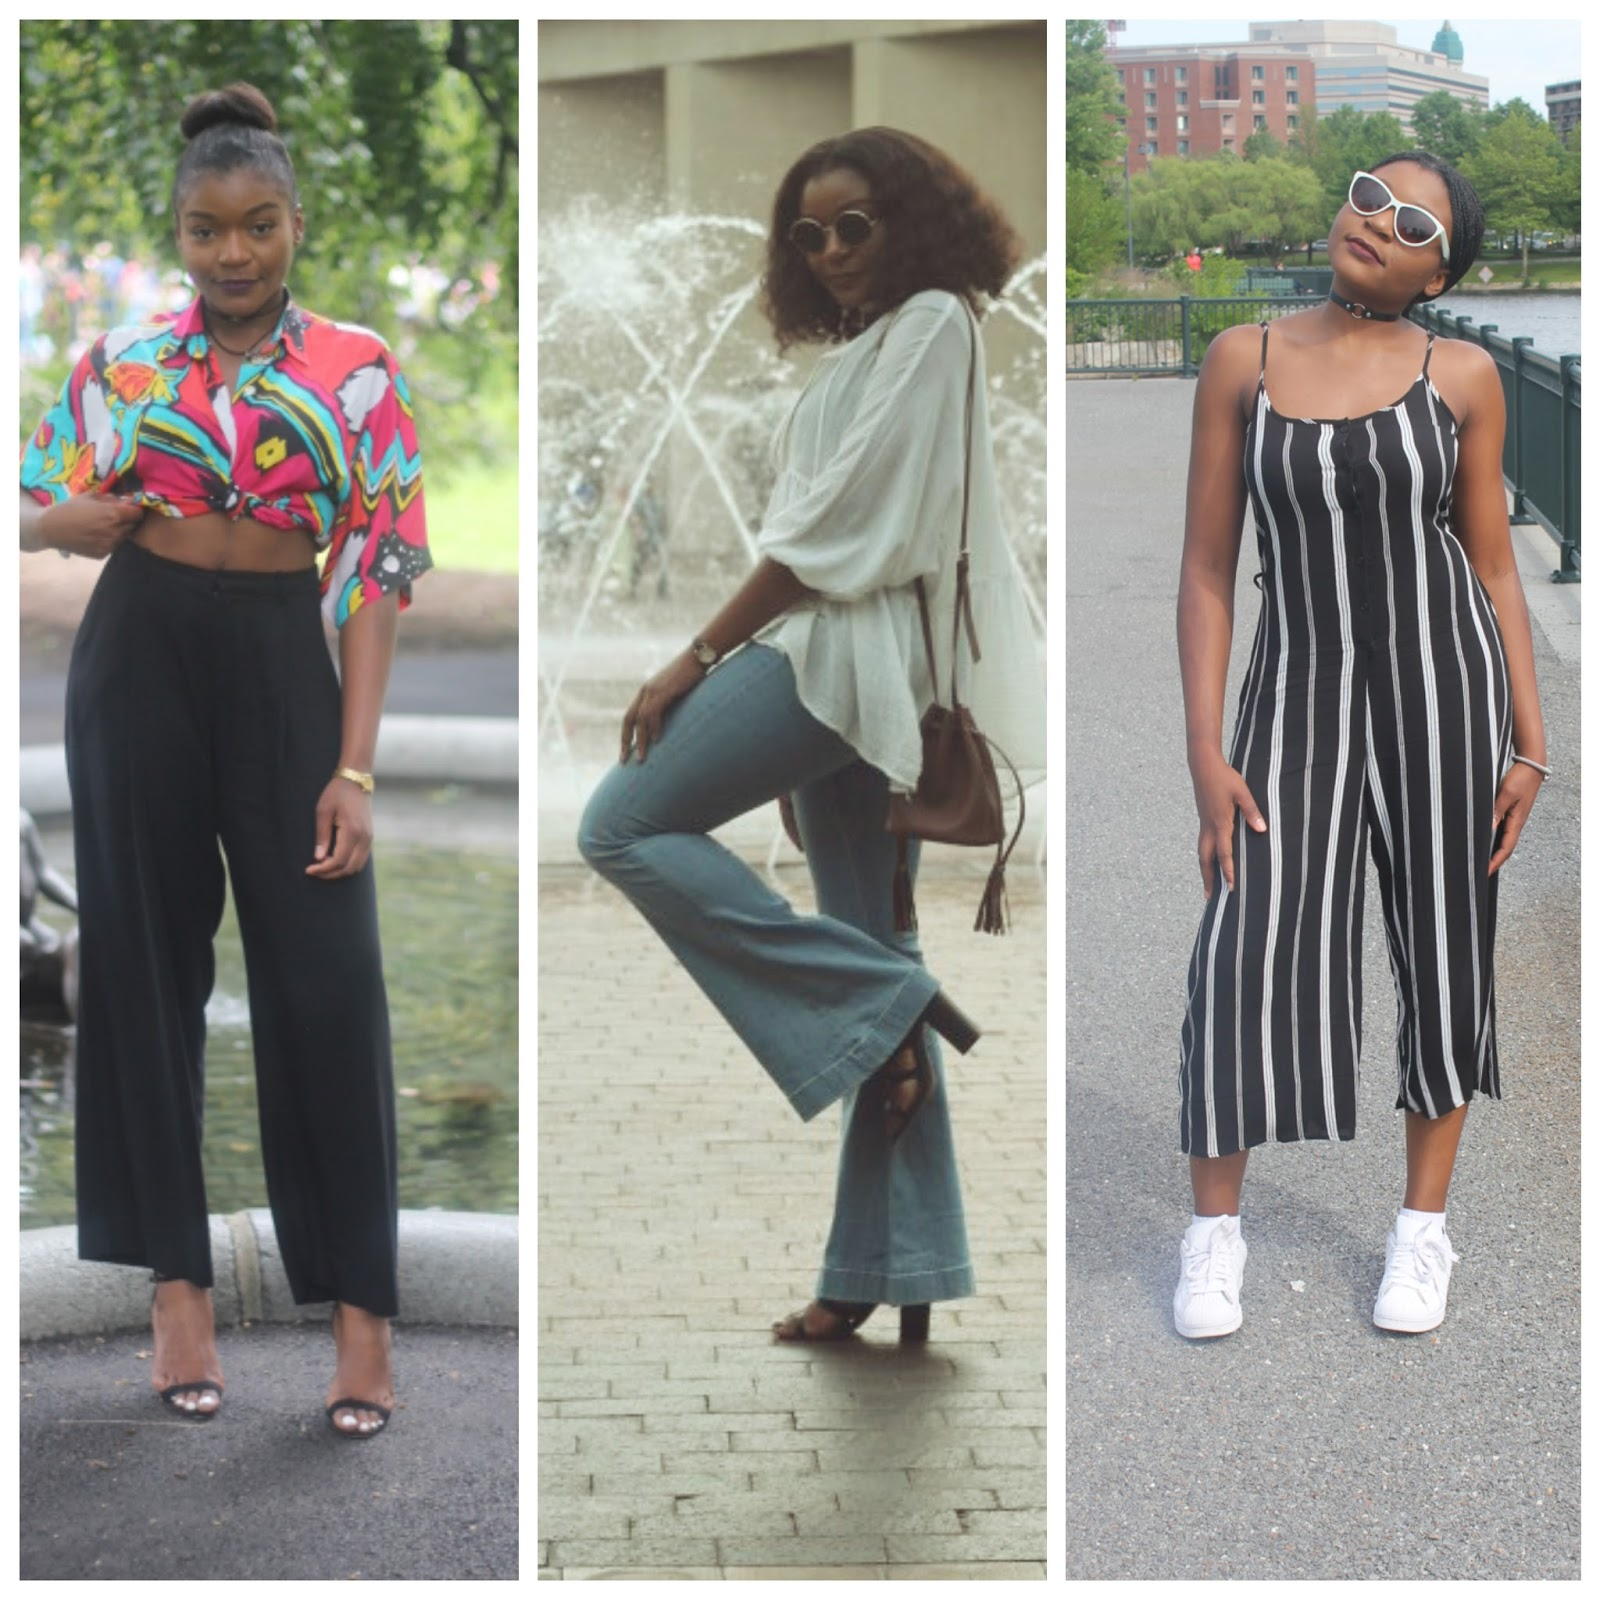 EPISODE 11: FASHION BLOGGER    Ugonna Nwaka | April Basi